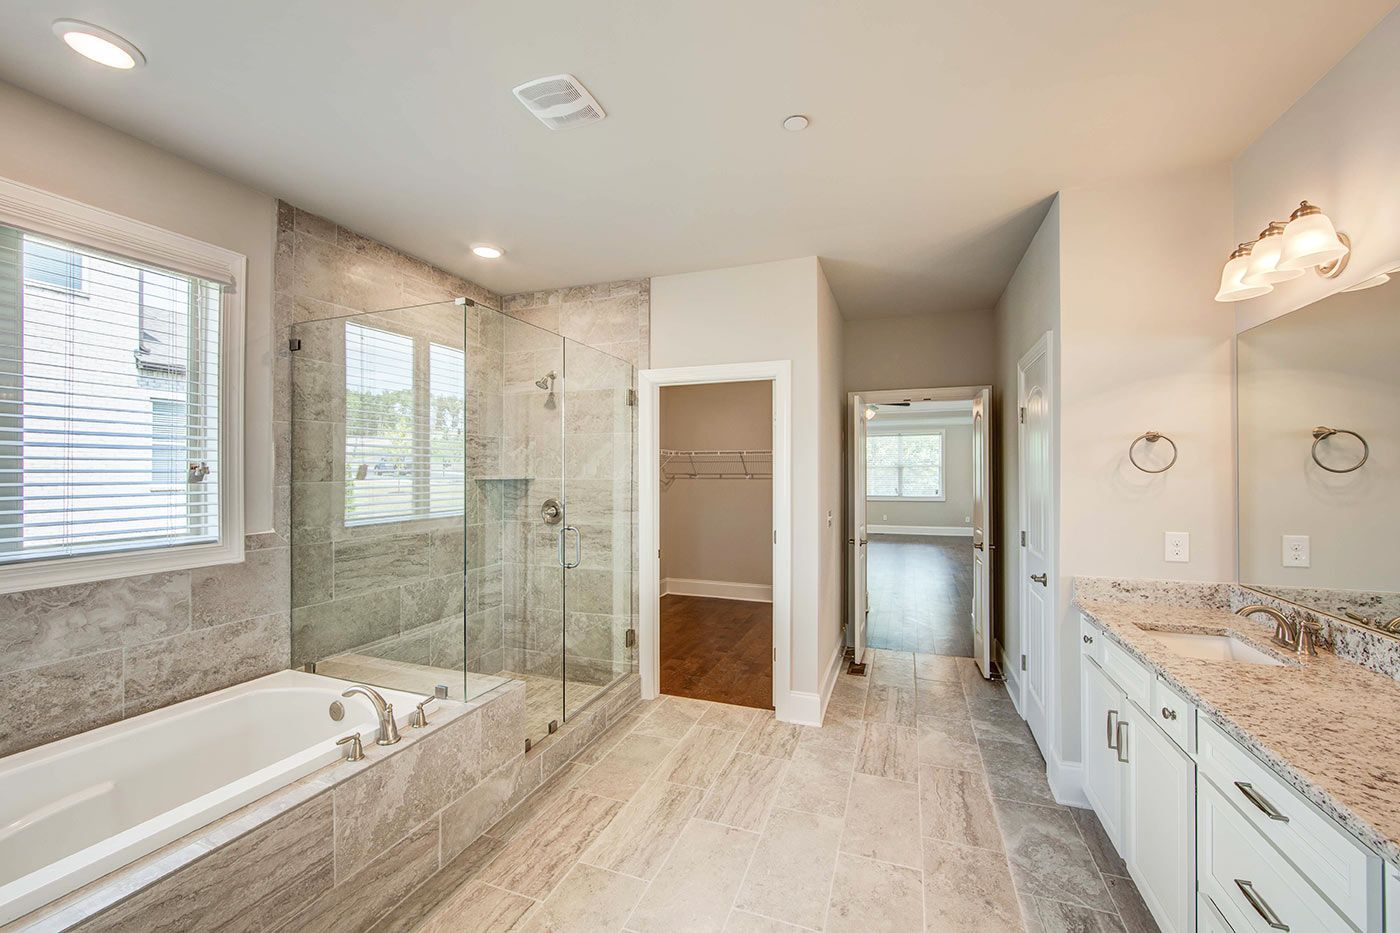 Bathroom featured in the TISDALE By D.R. Horton in Nashville, TN